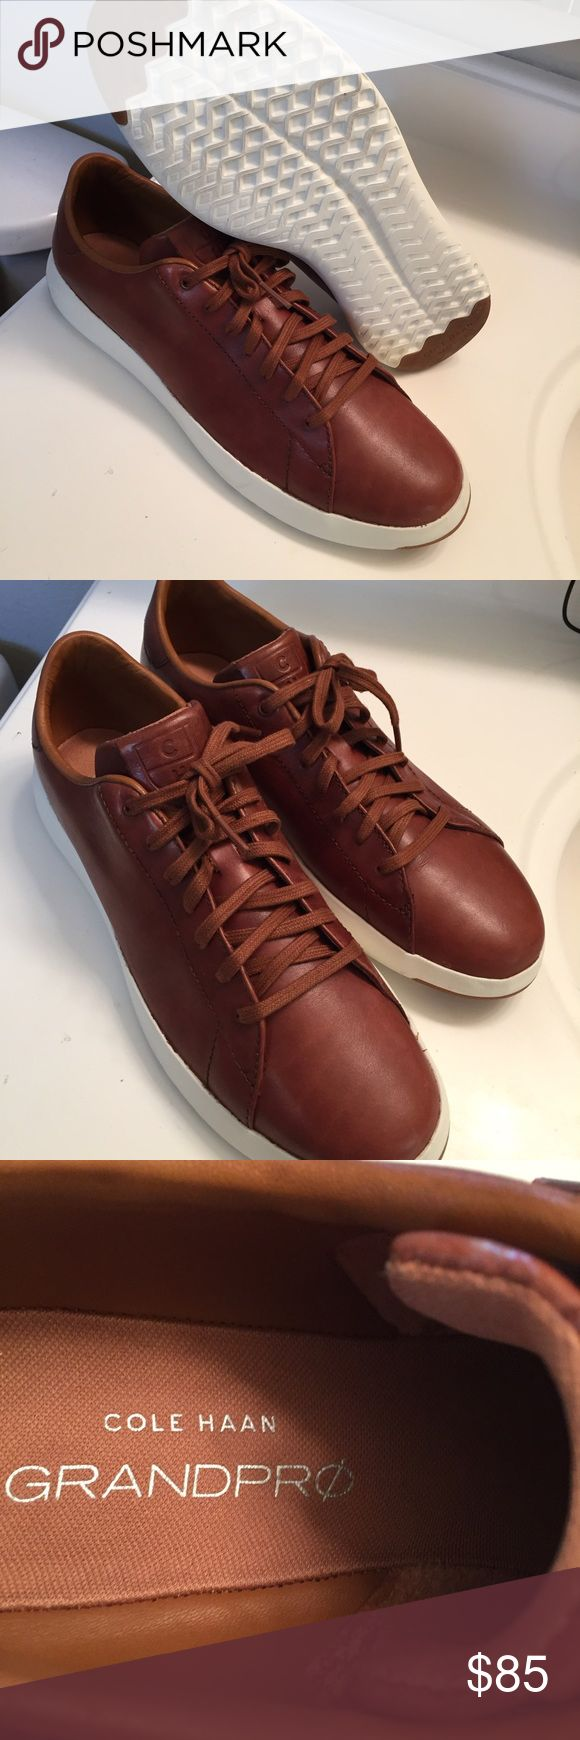 Cole Haan grandpro sneakers 10.5 Like new cole Haan sneakers. Slightly too small for me and only worn a handful of times. Cole Haan Shoes Sneakers